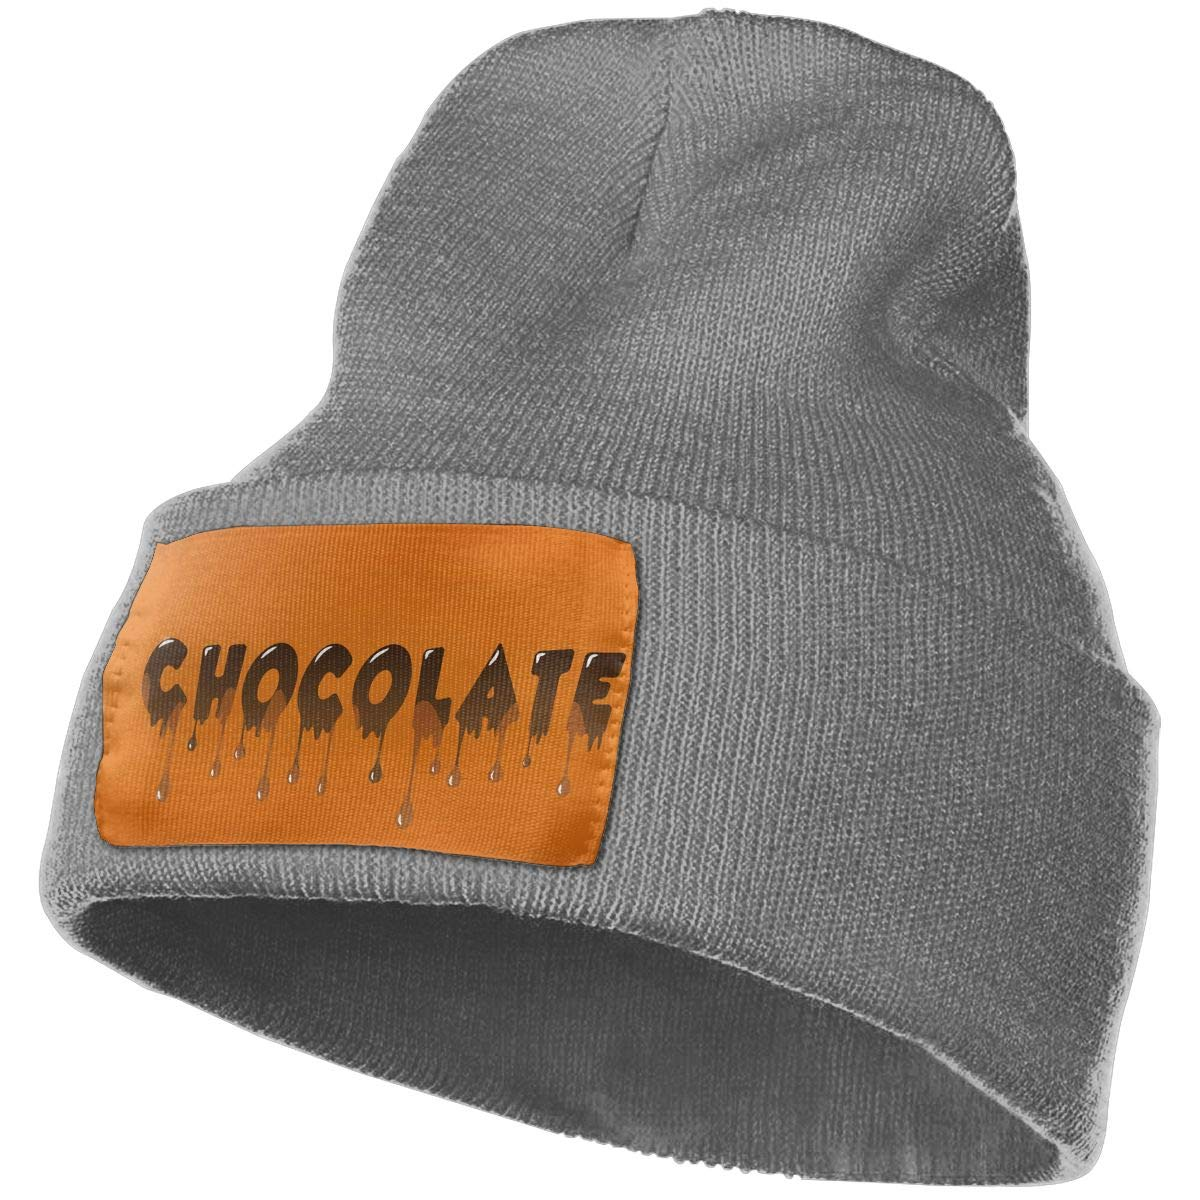 Deep Heather Beanie Hats Chocolate Material Knit Hedging Cap Slouchy Winter Warm Skull Caps For Men Womens